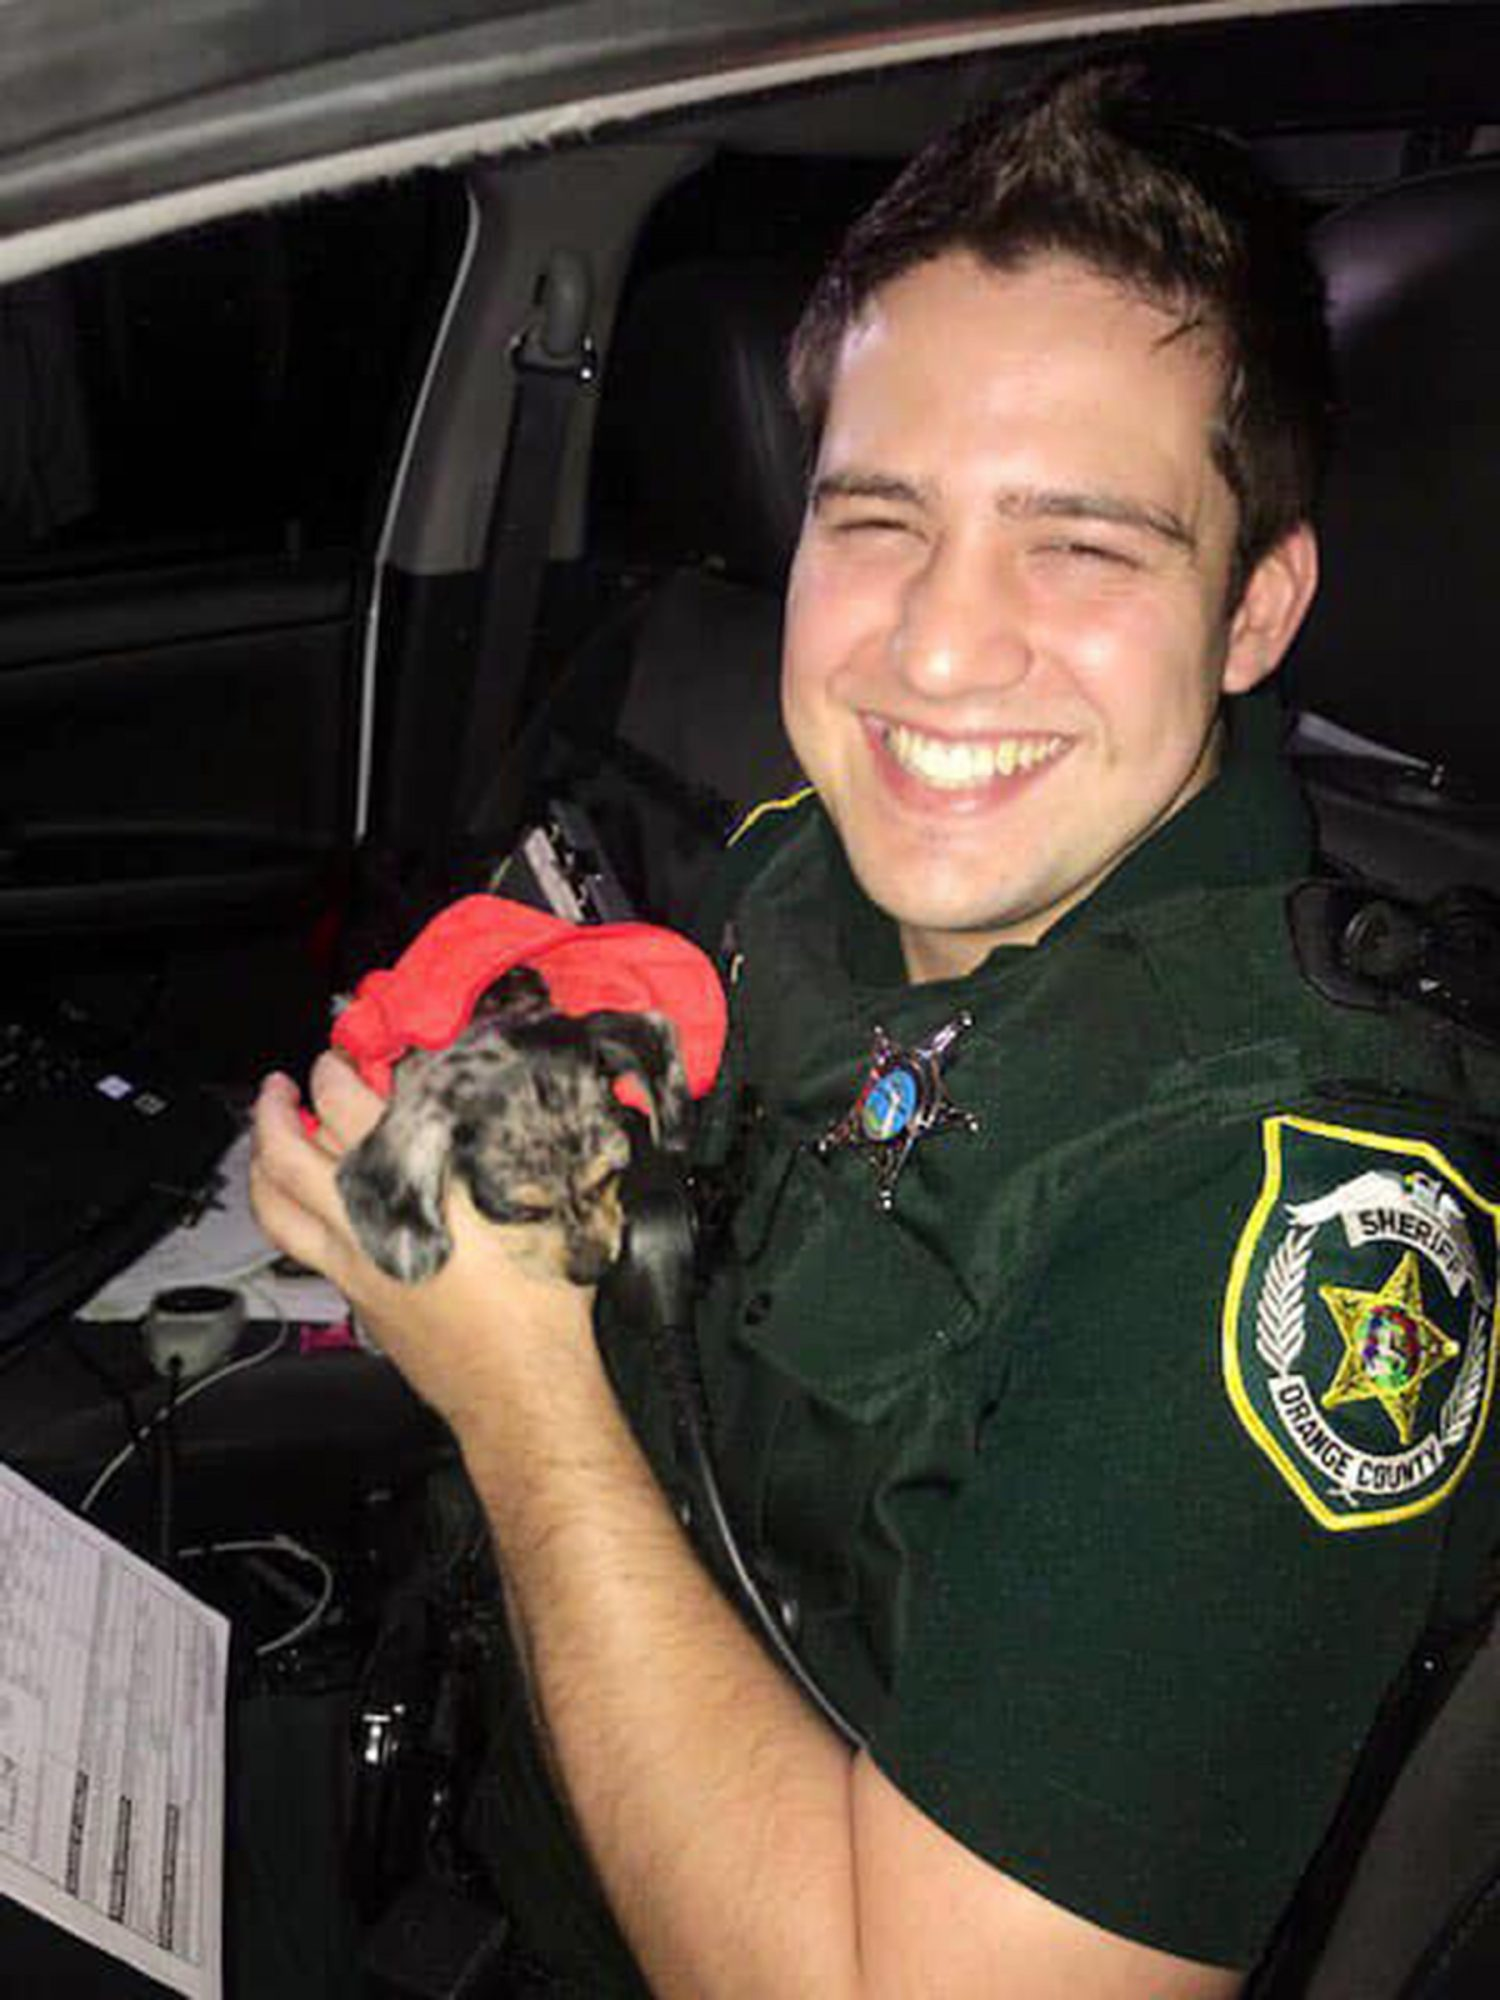 Meet Dorian! While working the Hurricane, deputies responded to a suspicious vehicle, which was unoccupied and partially flooded. Deputy Josh Tolliver checked it out and found this puppy. Deputies named her Dorian. She was wet and scared but...